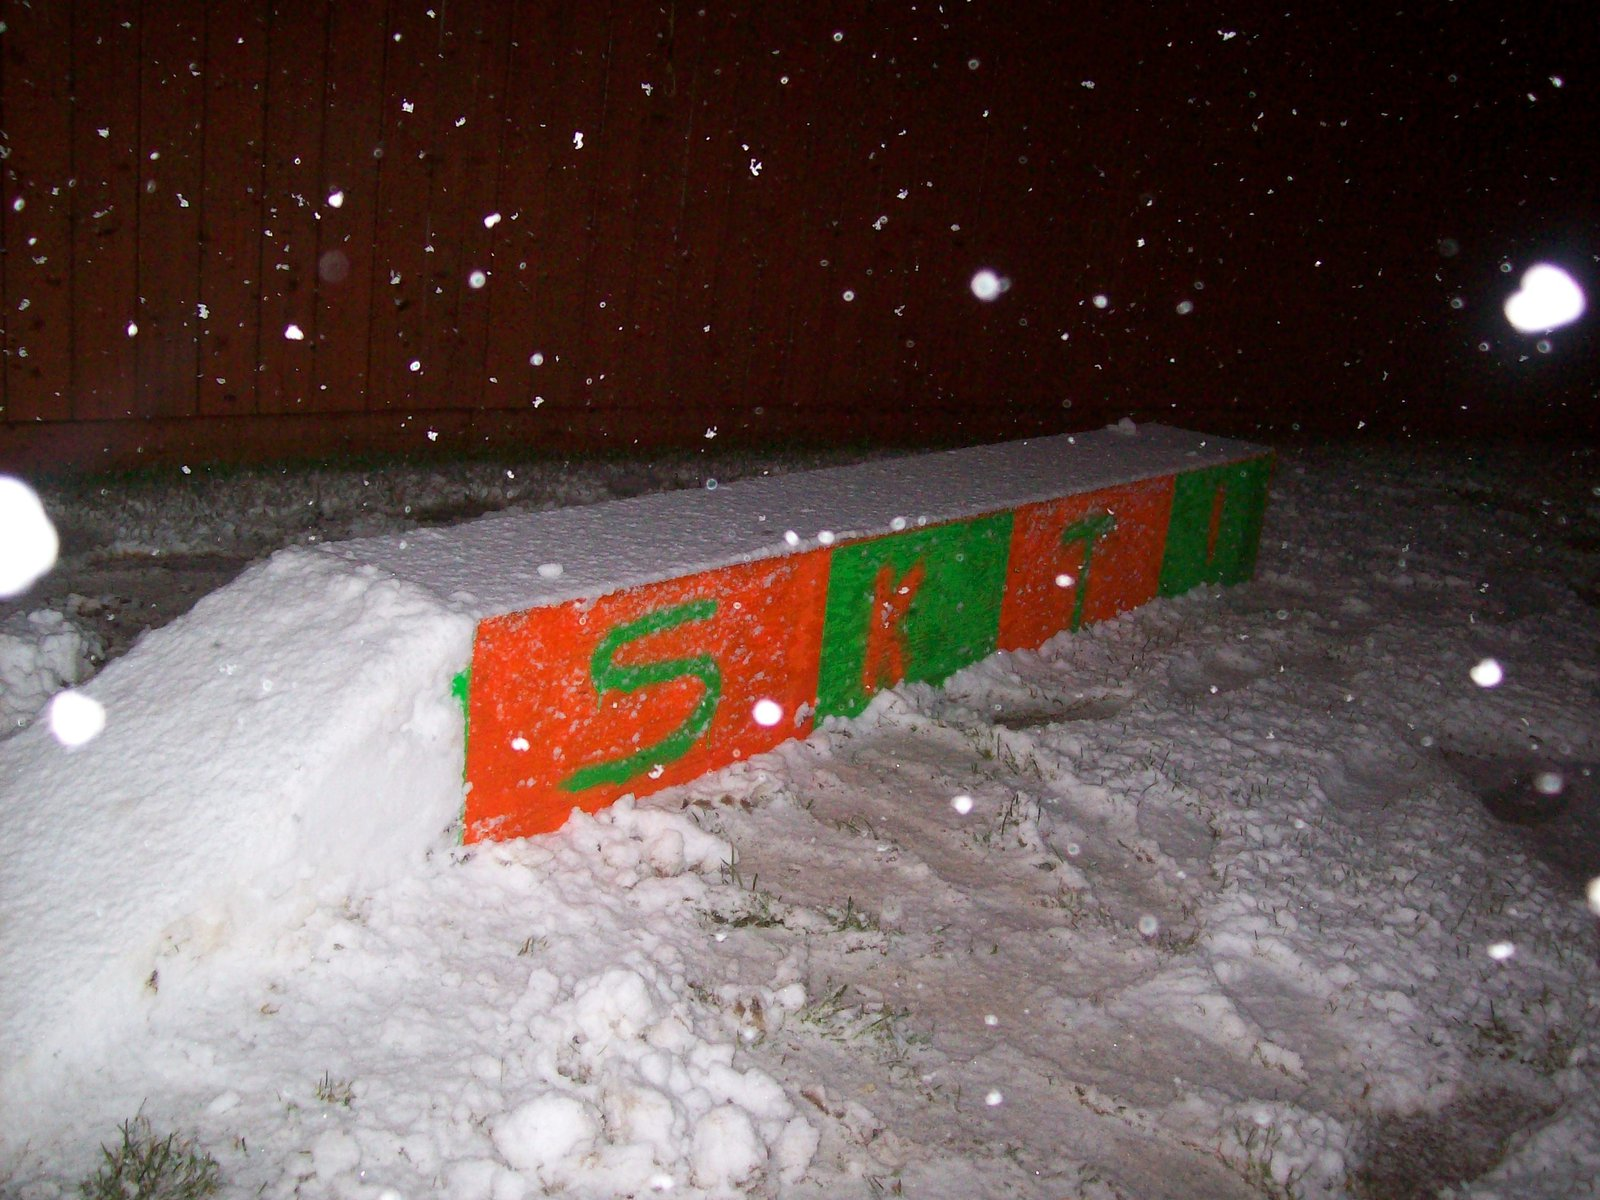 New box side 2... SKI!